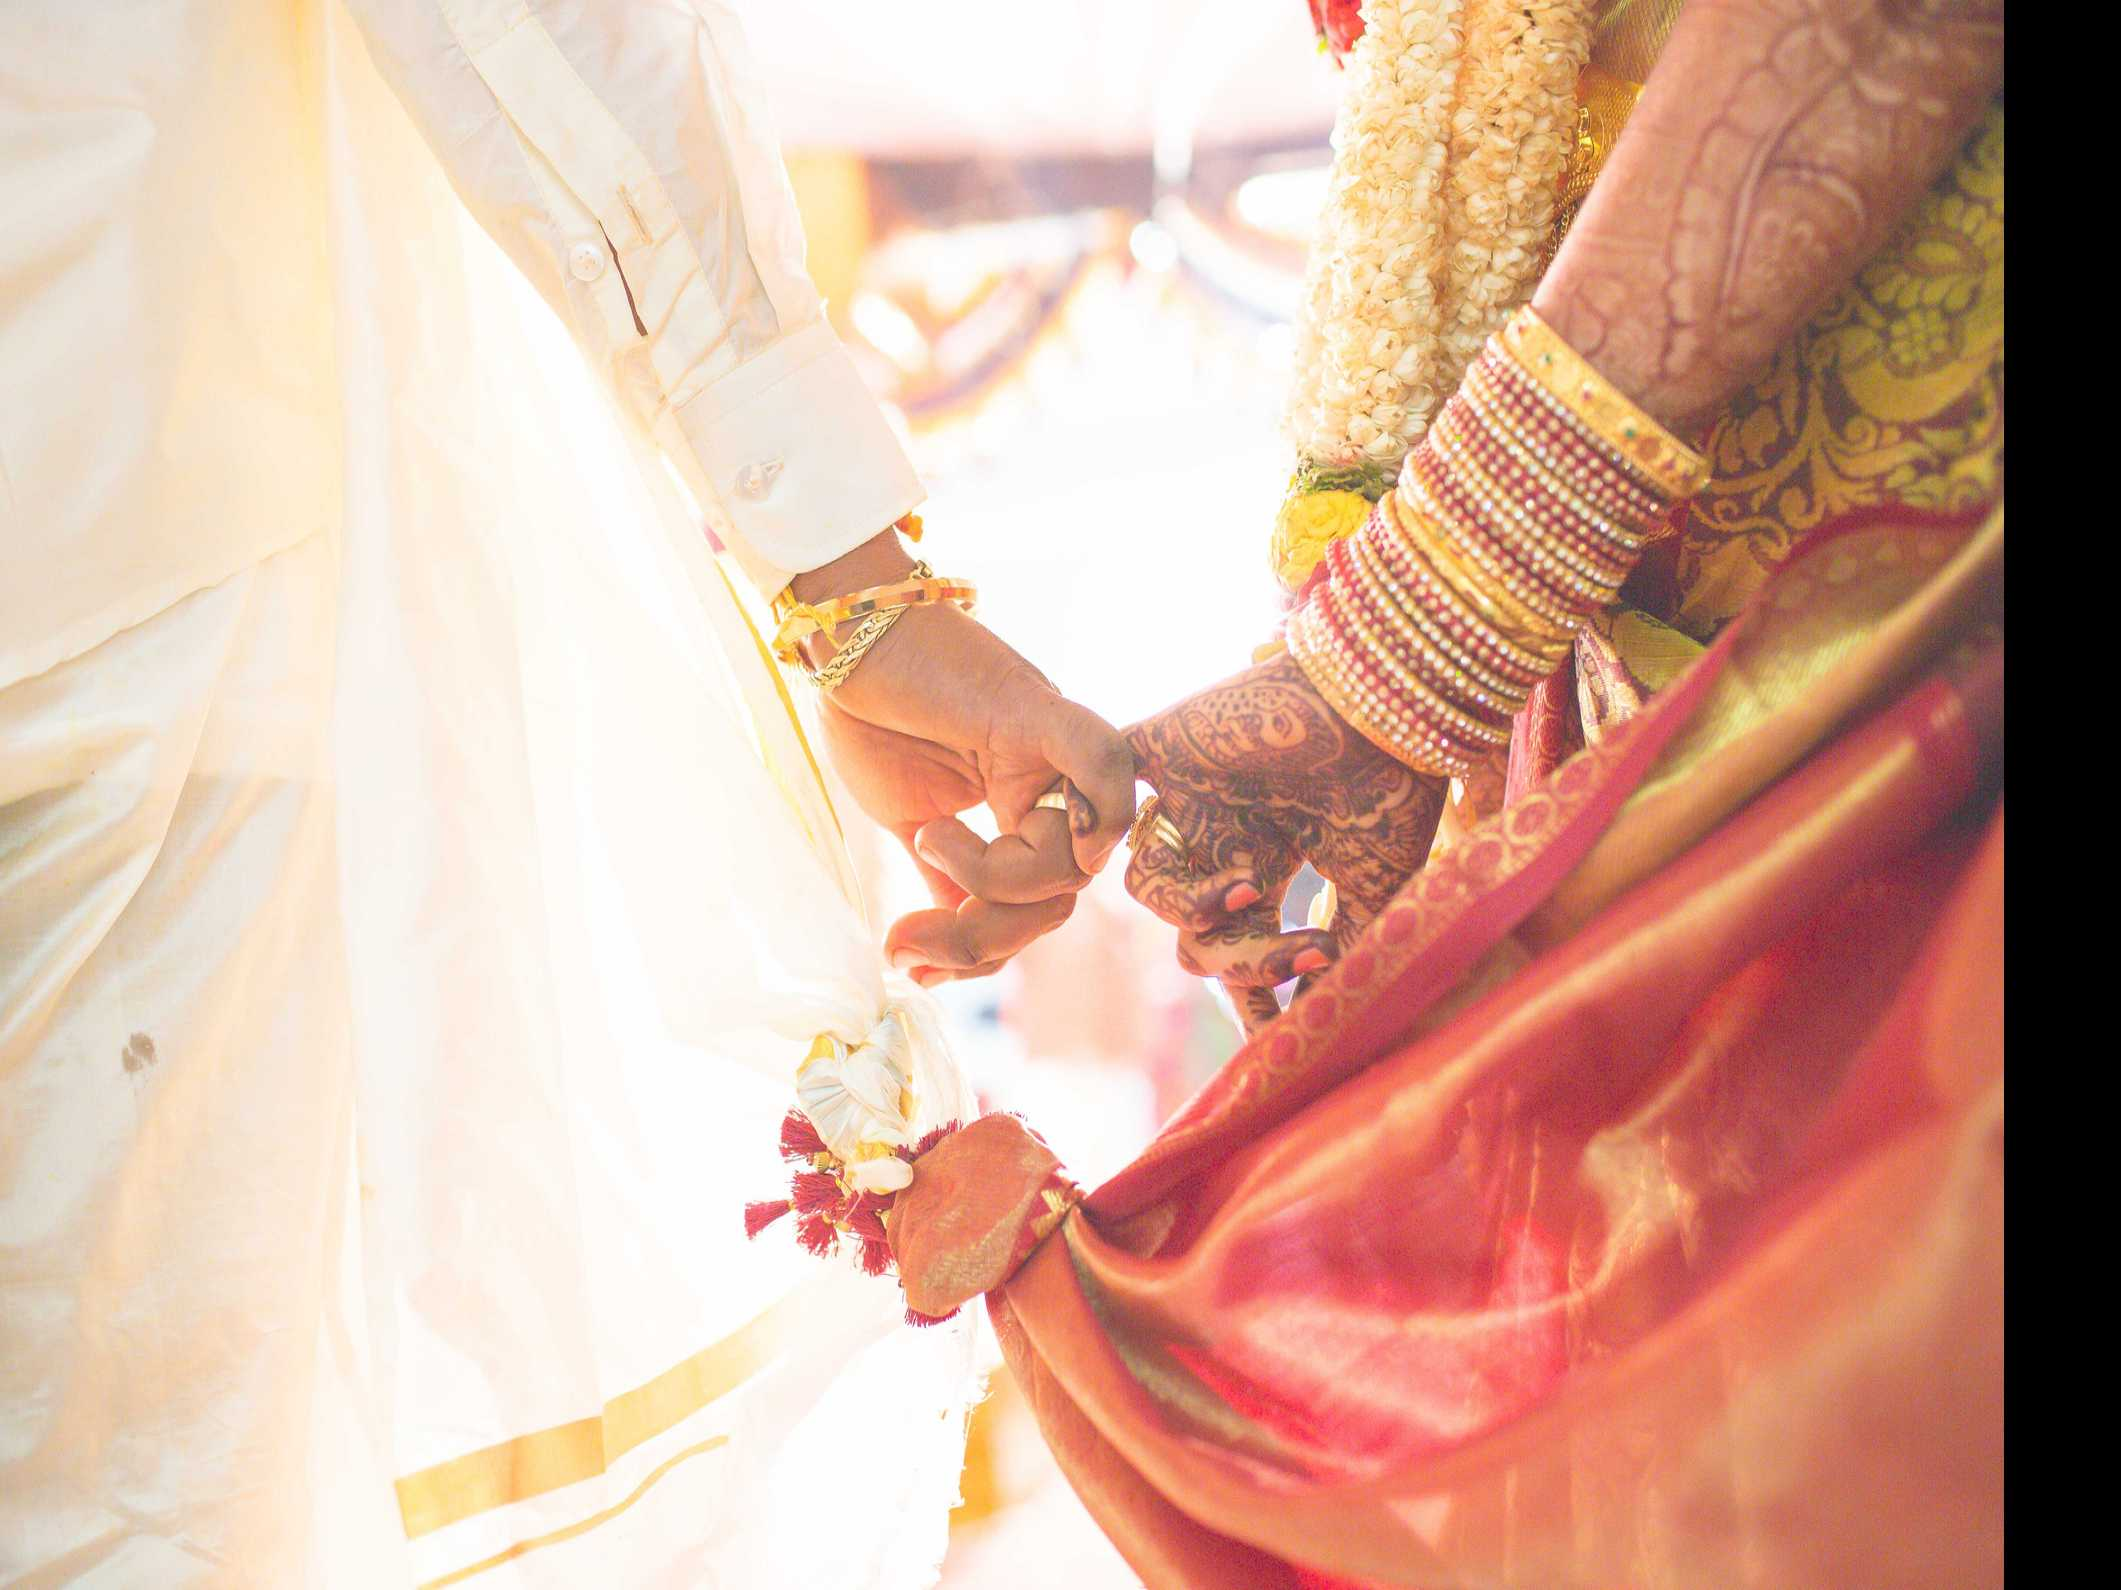 Indian Bigamist, Busted for Dowry Demand, Turns Out to Be Trans